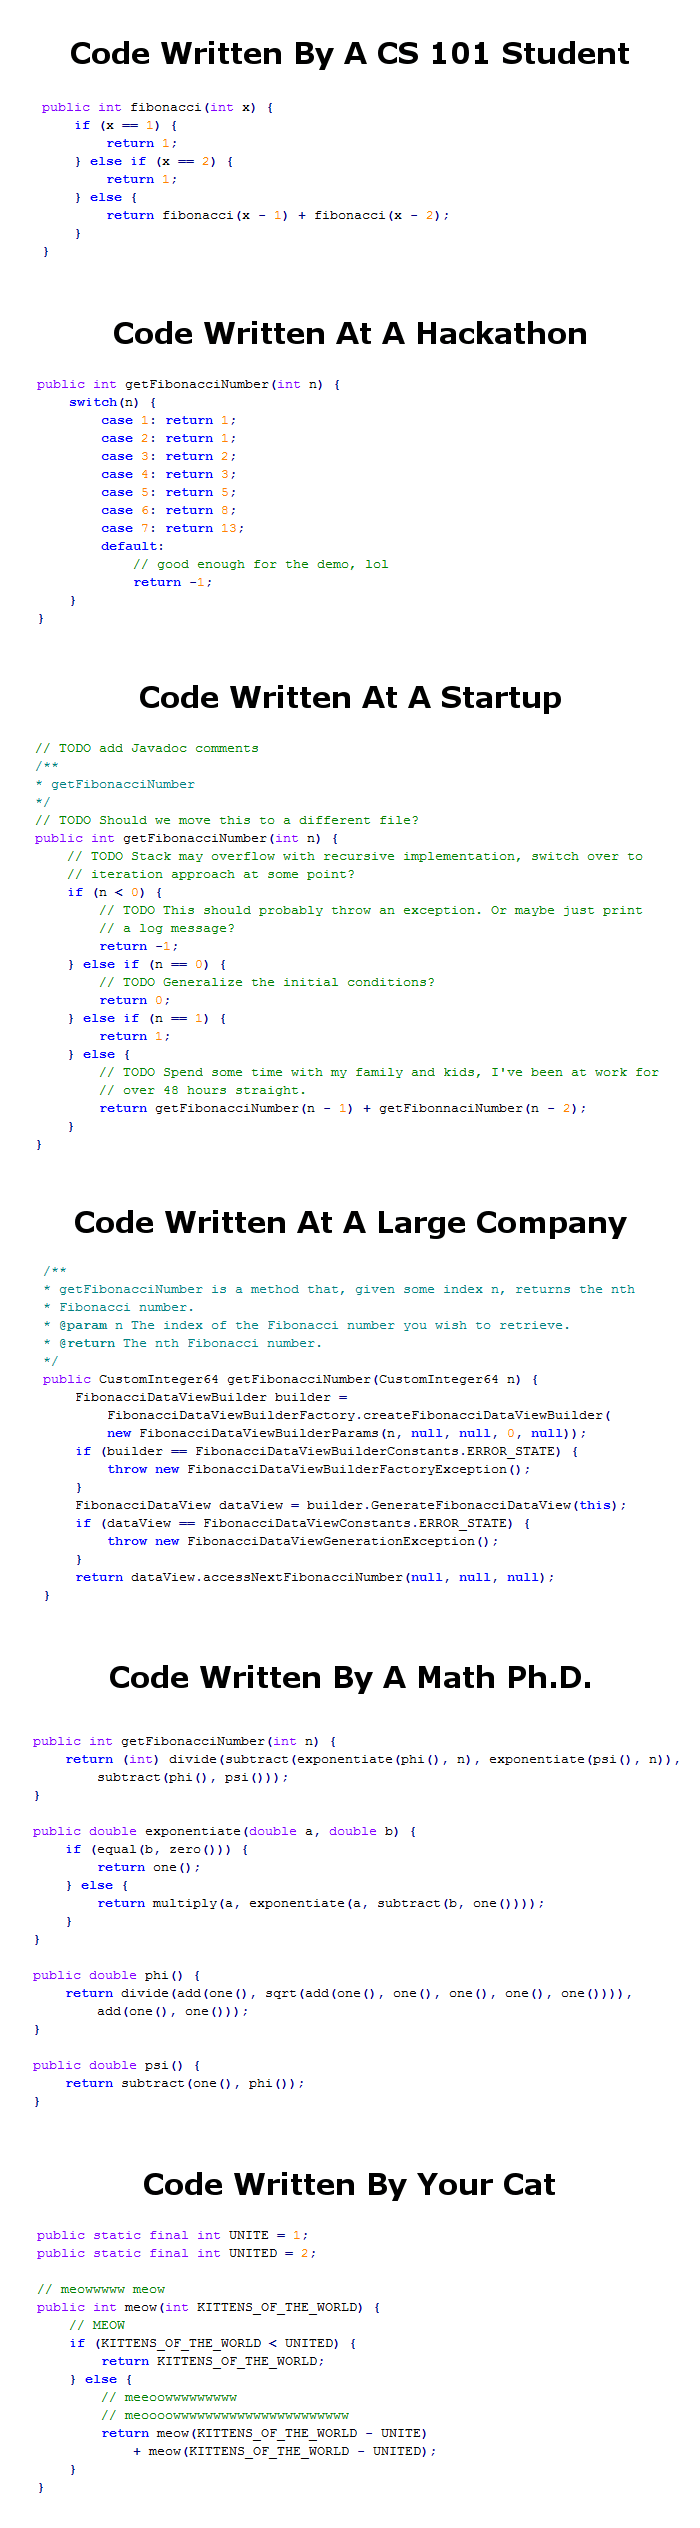 code_written_by_a_cs_101_student_vs_hackathon_a_startup_large_company_math_phd_your_cat